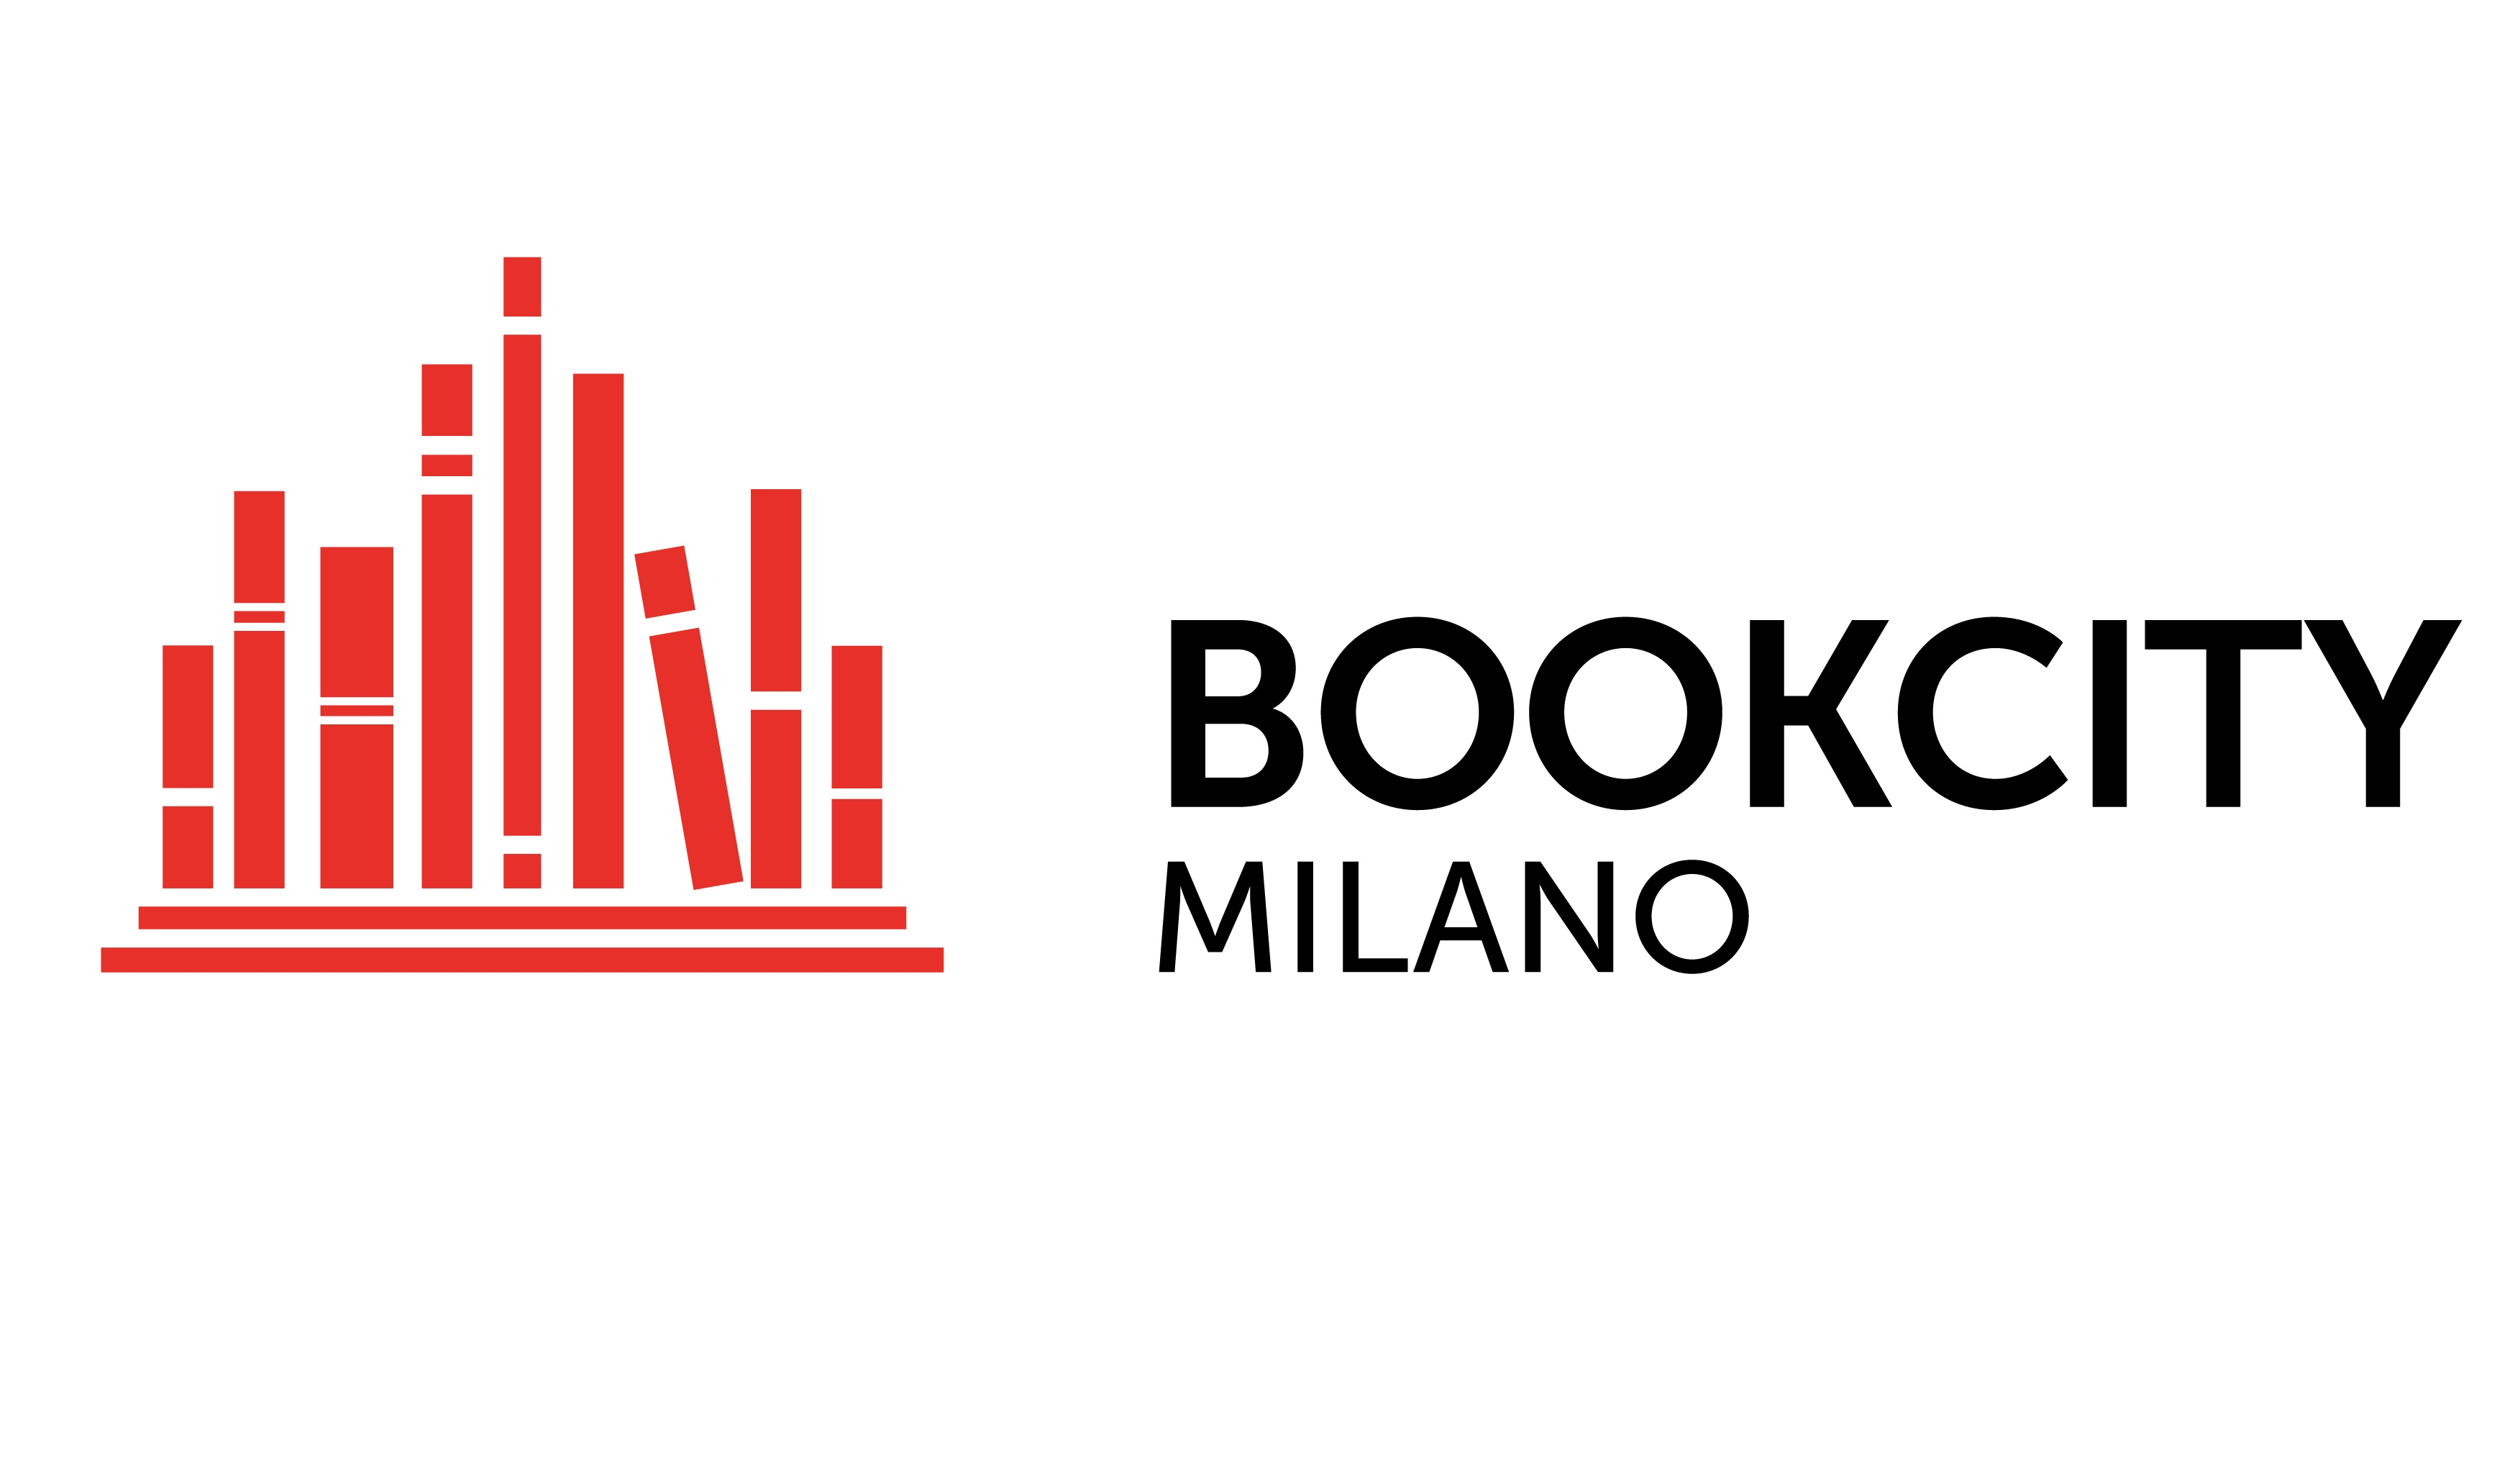 Milano-book-city